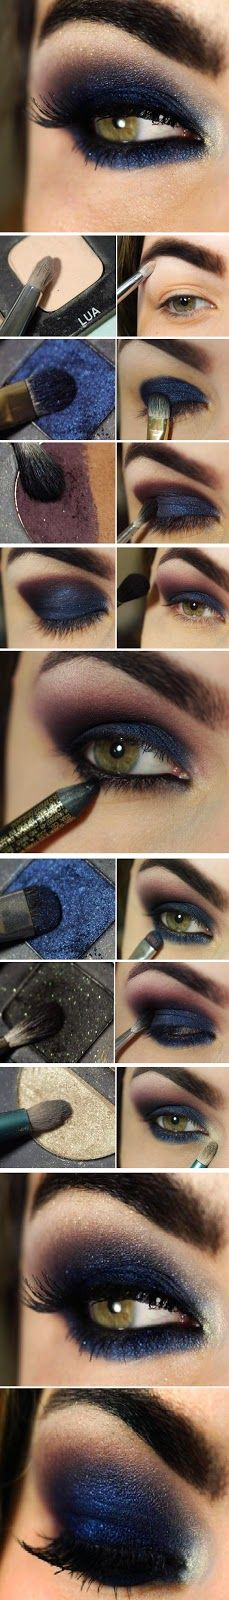 How to : Navy blue palette Makeup Tutorials - Step by Step / LoLus Makeup…